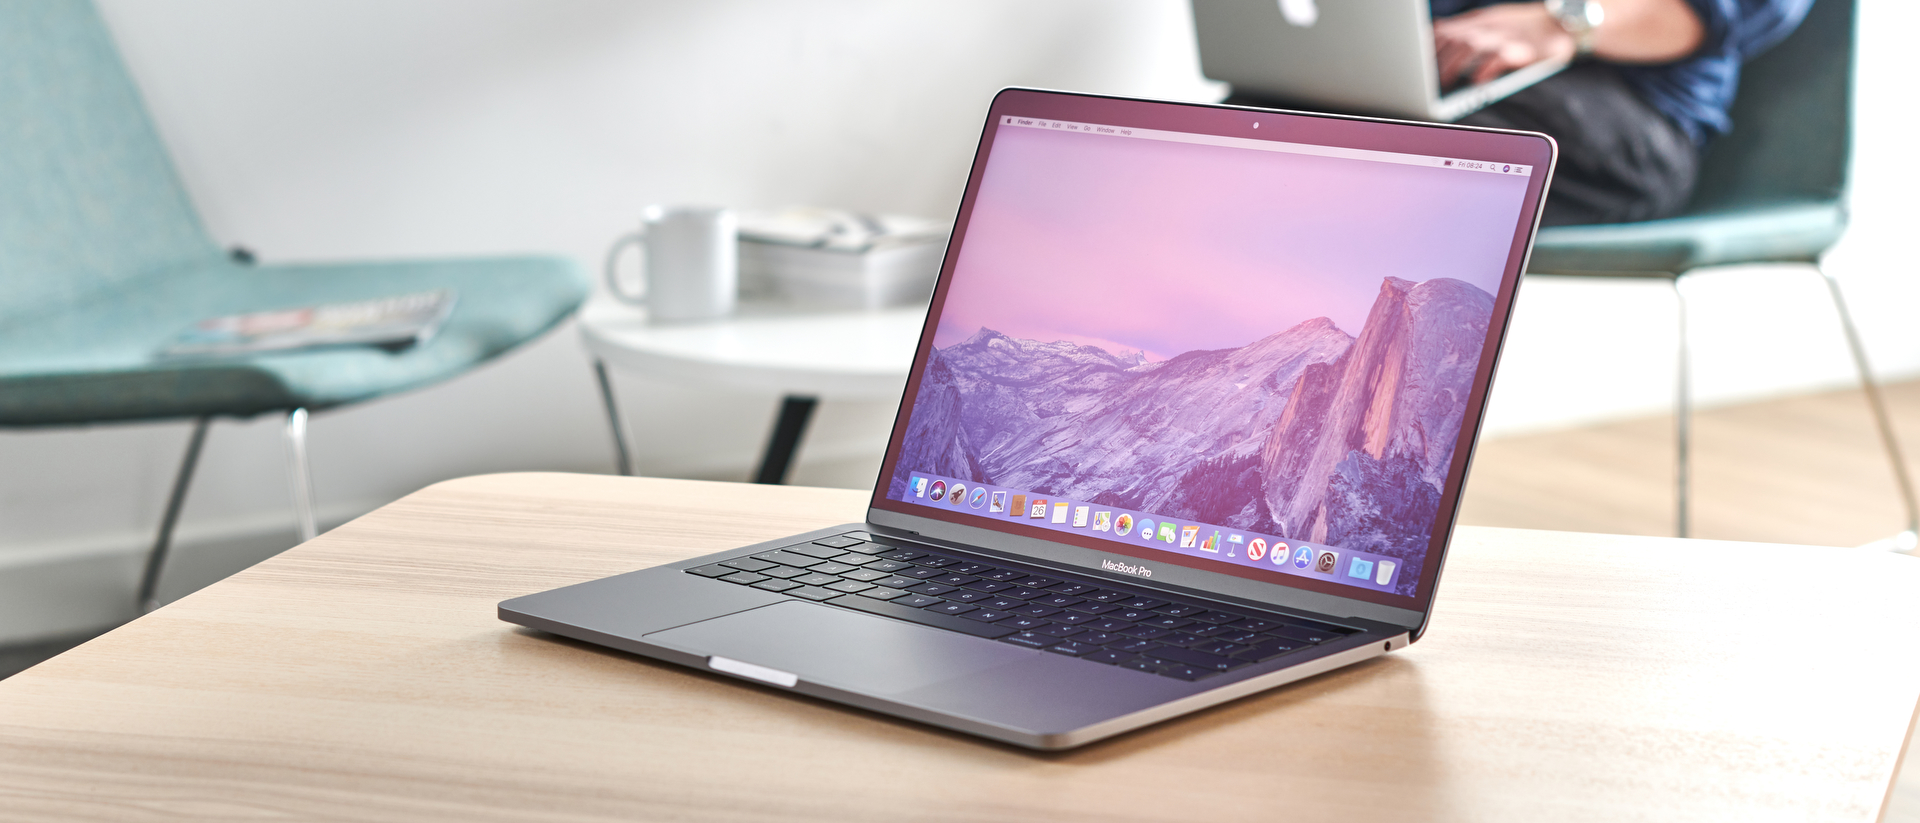 Apple MacBook Pro 2020 Price and Release Date